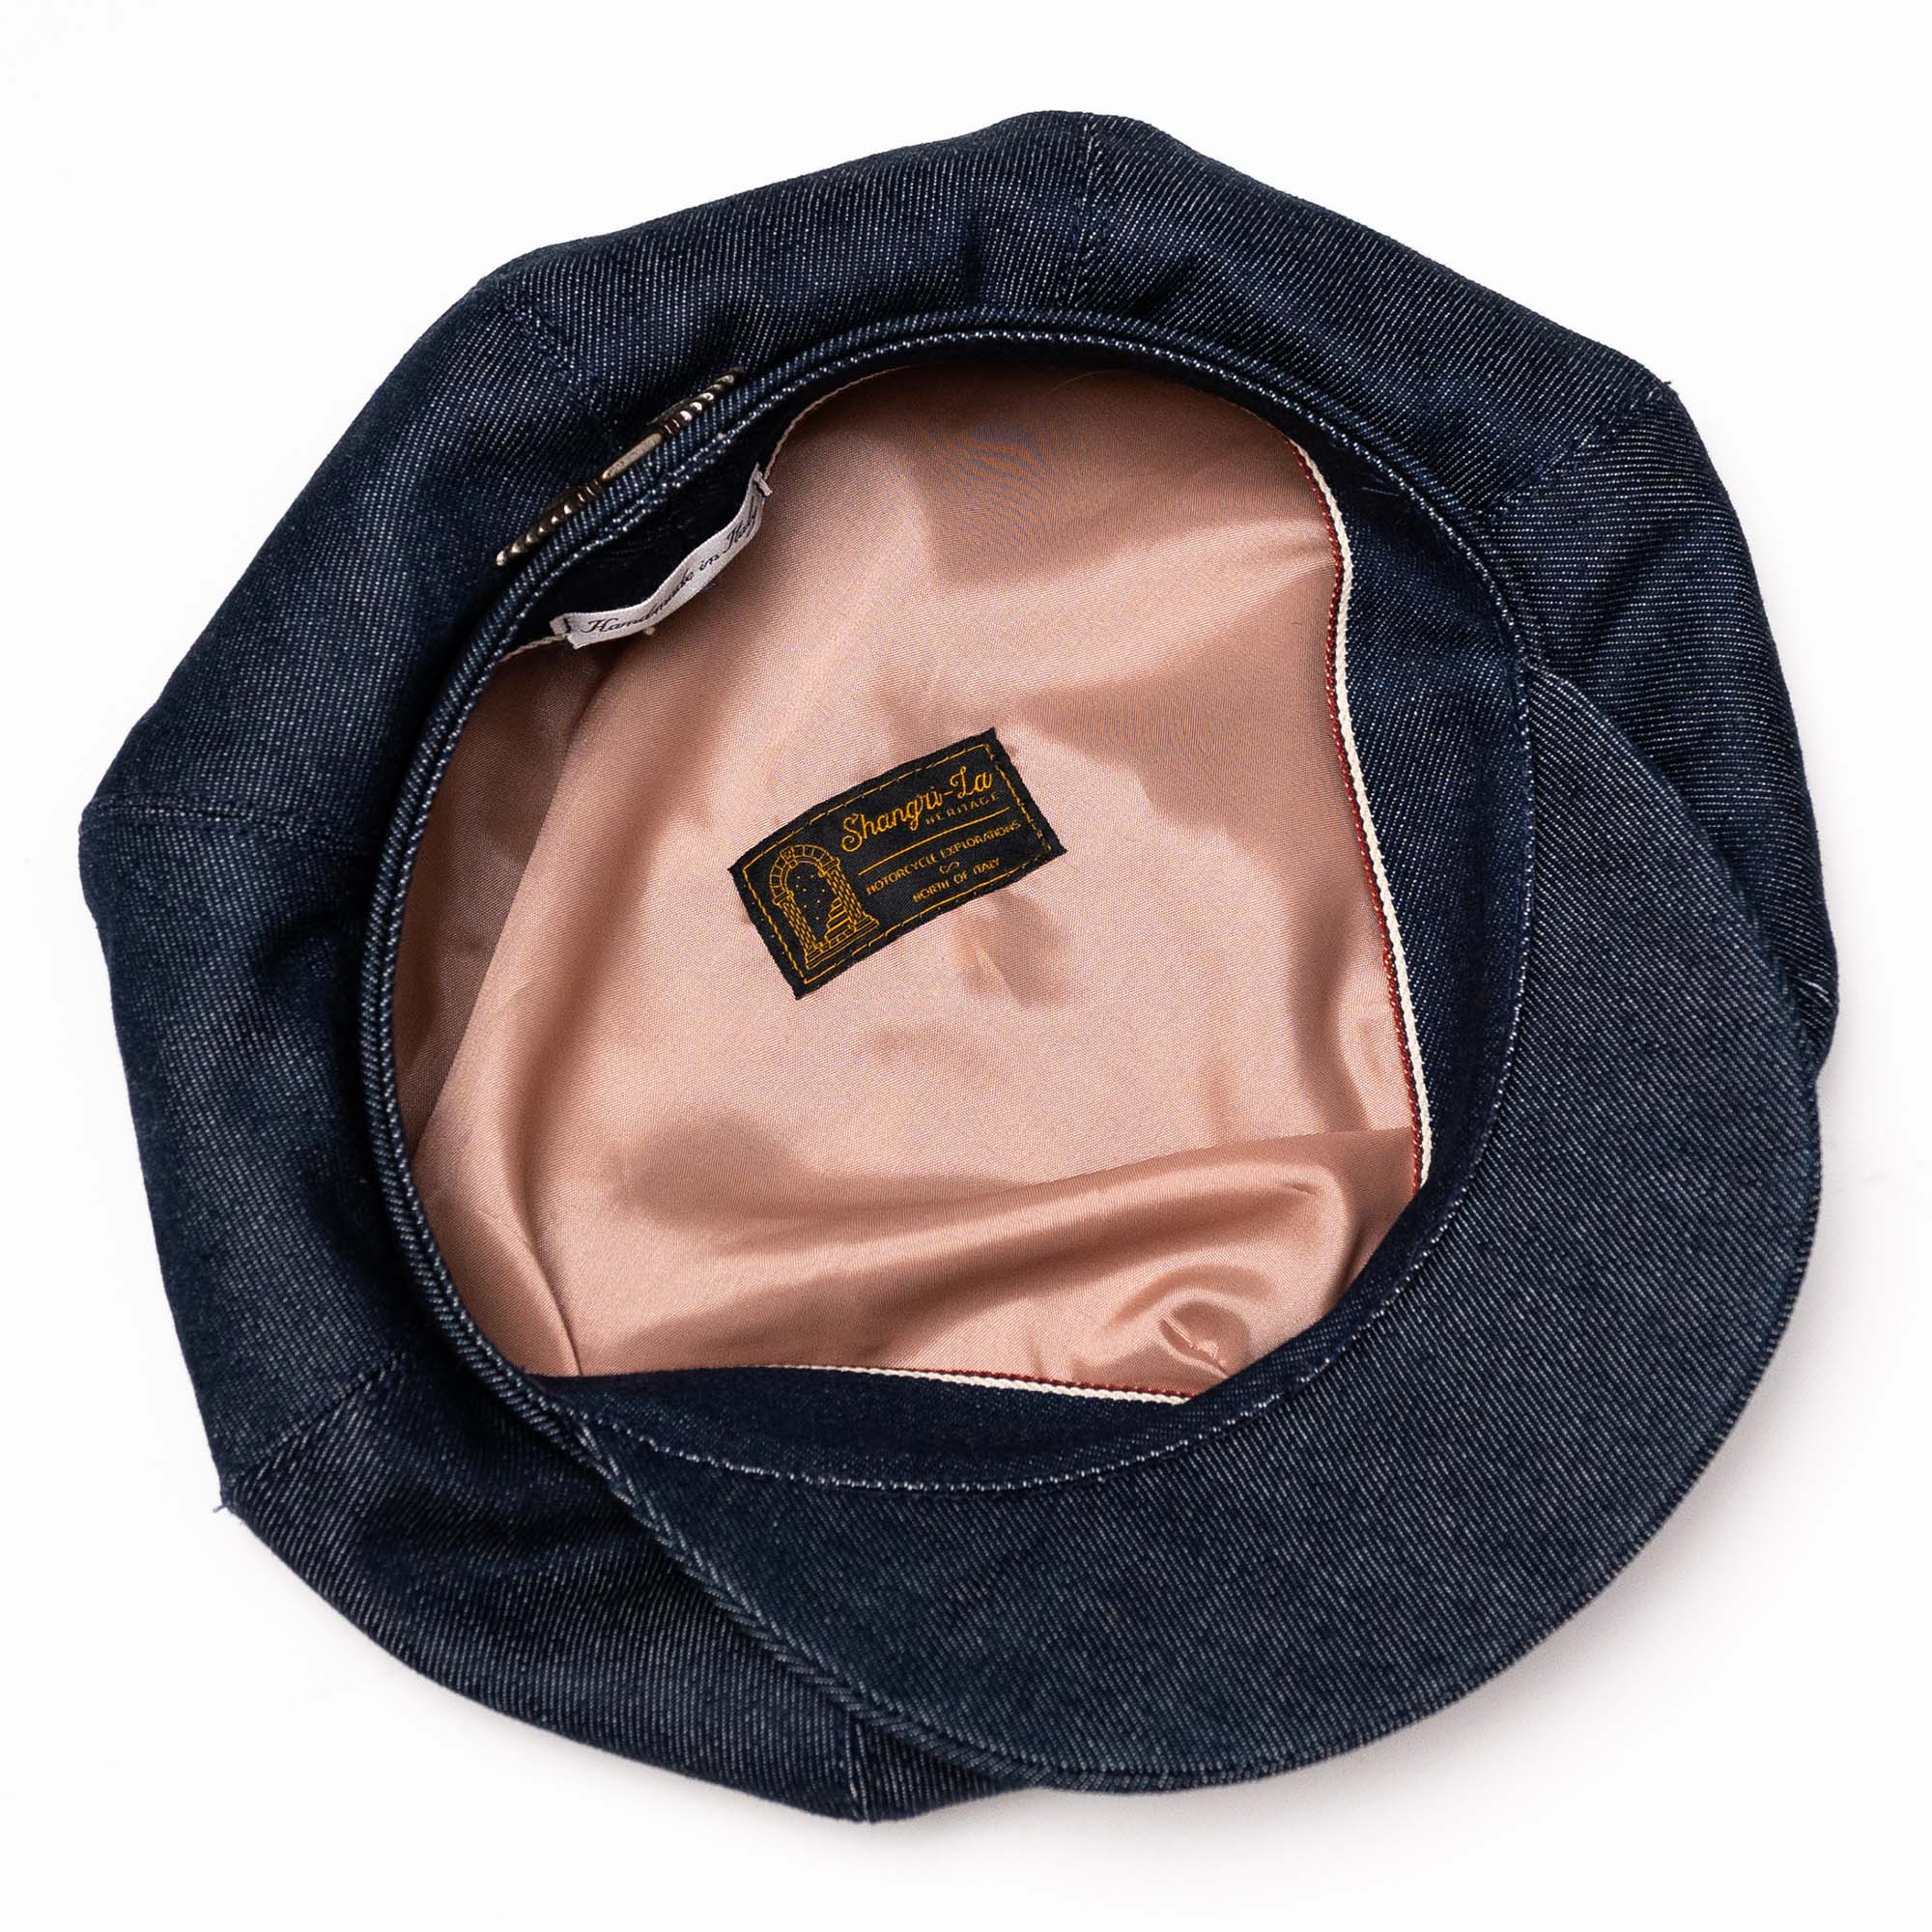 shangri-la-heritage-outlaw-womens-selvedge-candiani-denim-8-panel-riders-cap-still-life-inside